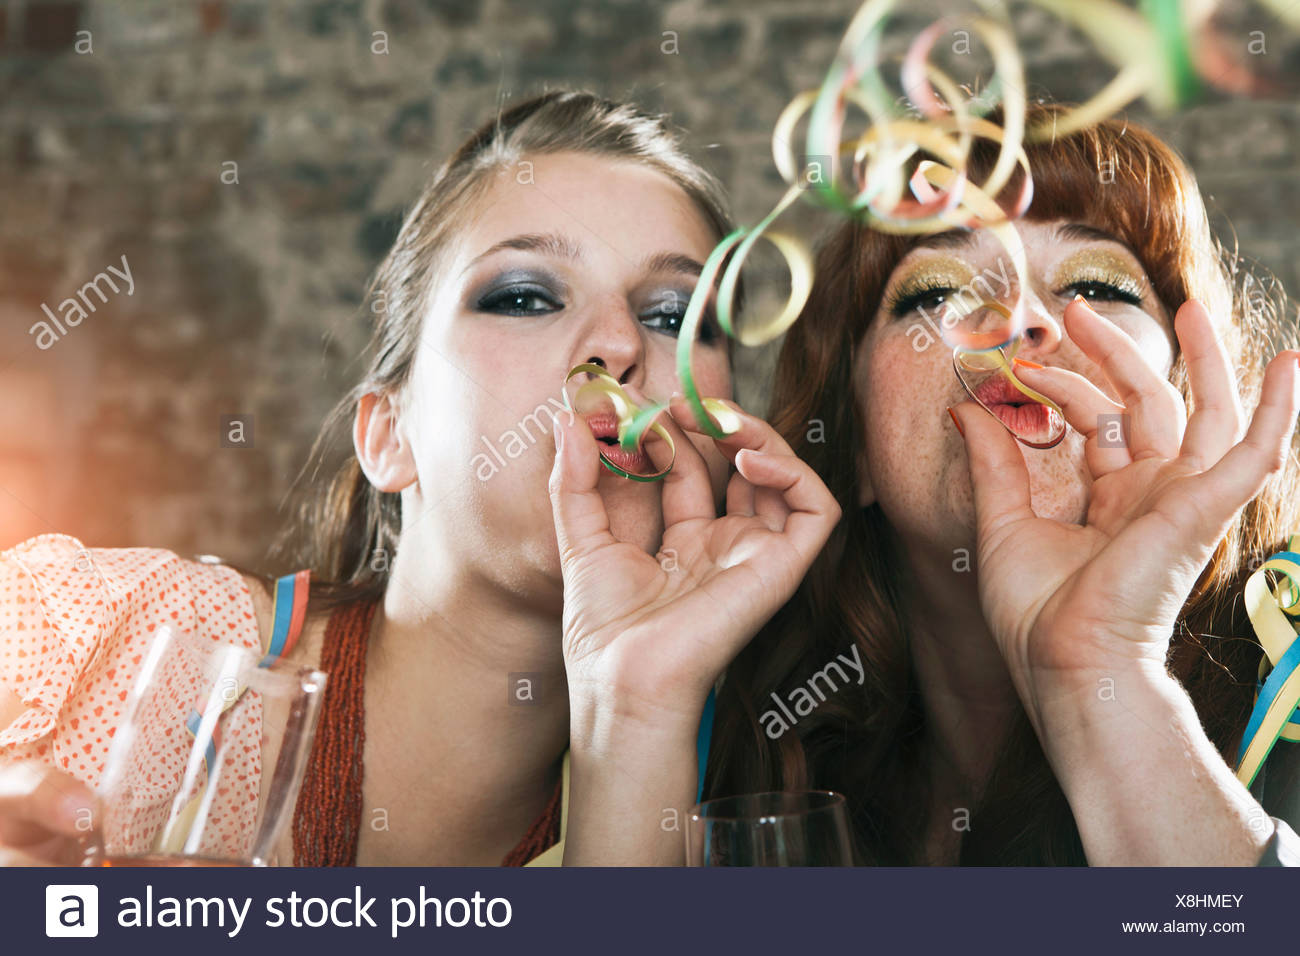 Allemagne, Berlin, Close up of young women blowing party streamers Photo Stock